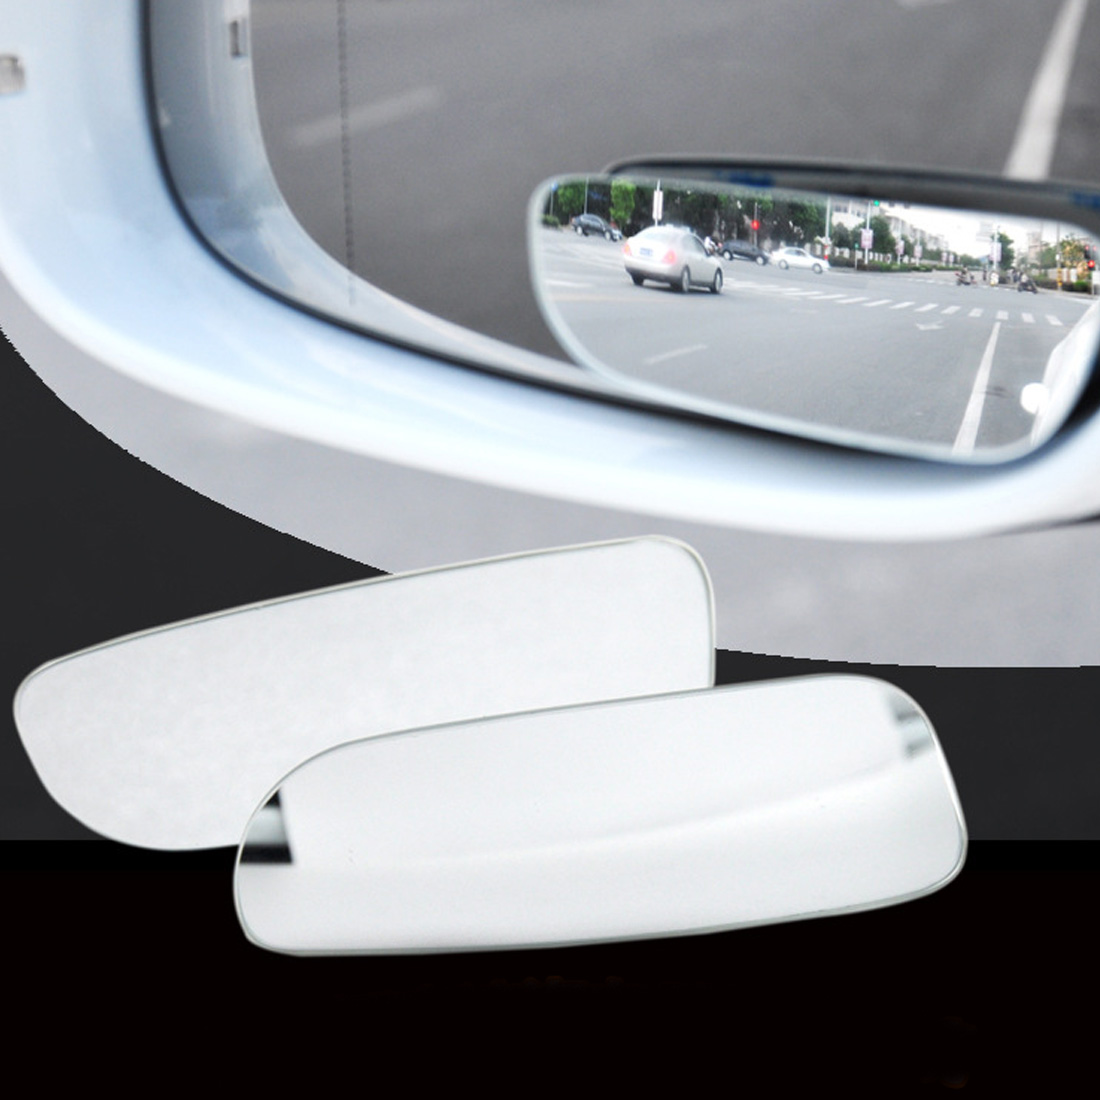 Dewtreetali 2Pcs Car 360 Degree Wide Angle Convex Blind Spot Mirror Parking Auto Motorcycle Rear View Adjustable Mirror